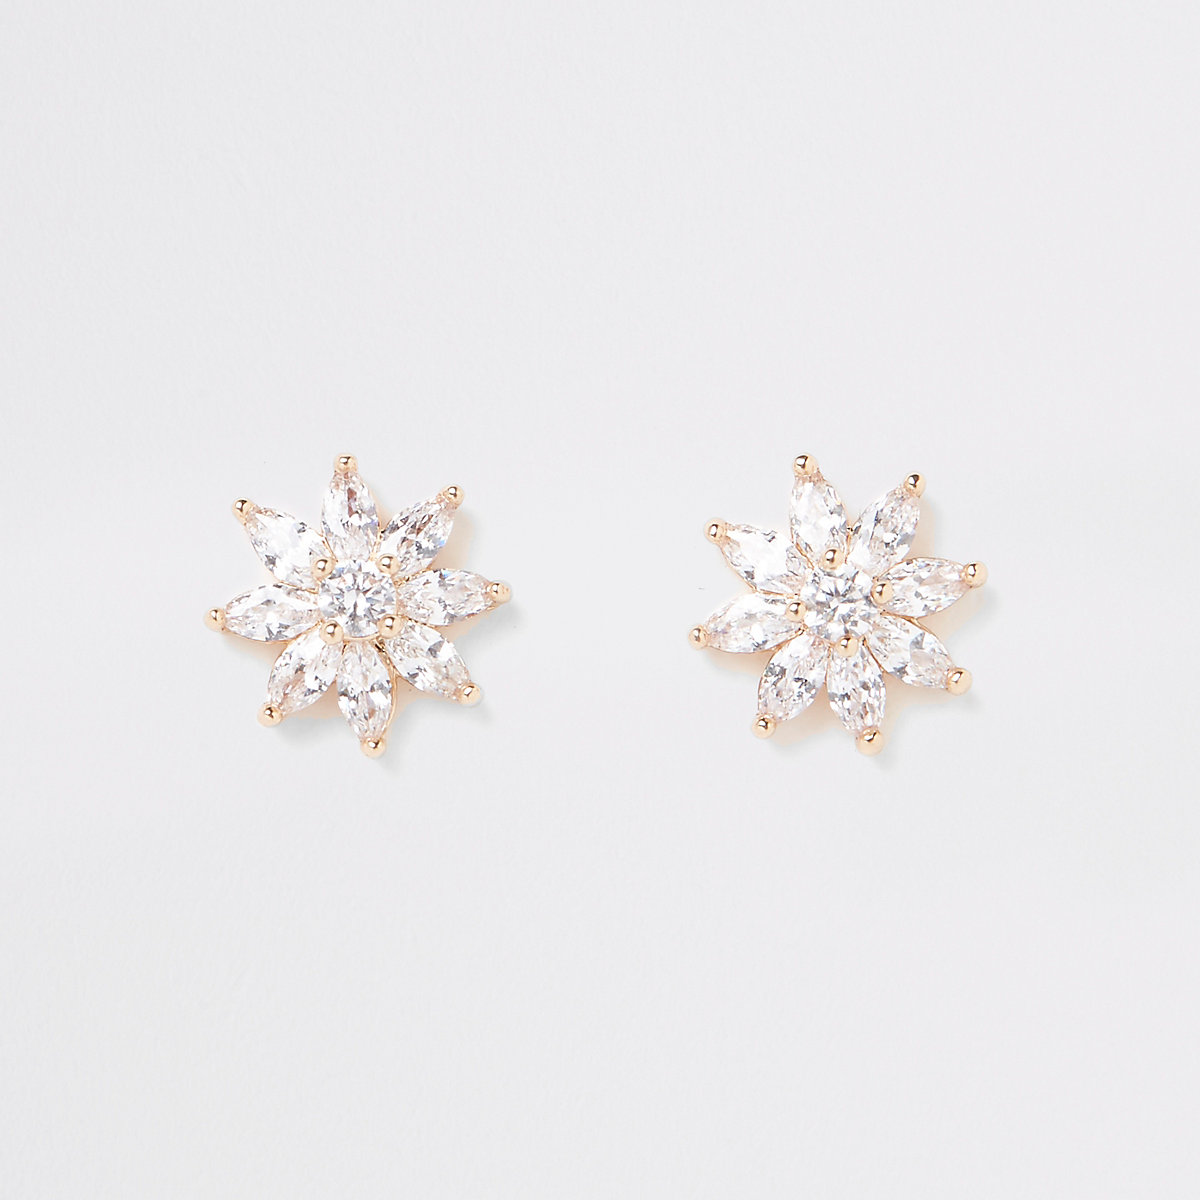 Gold plated cubic zirconia stud earrings